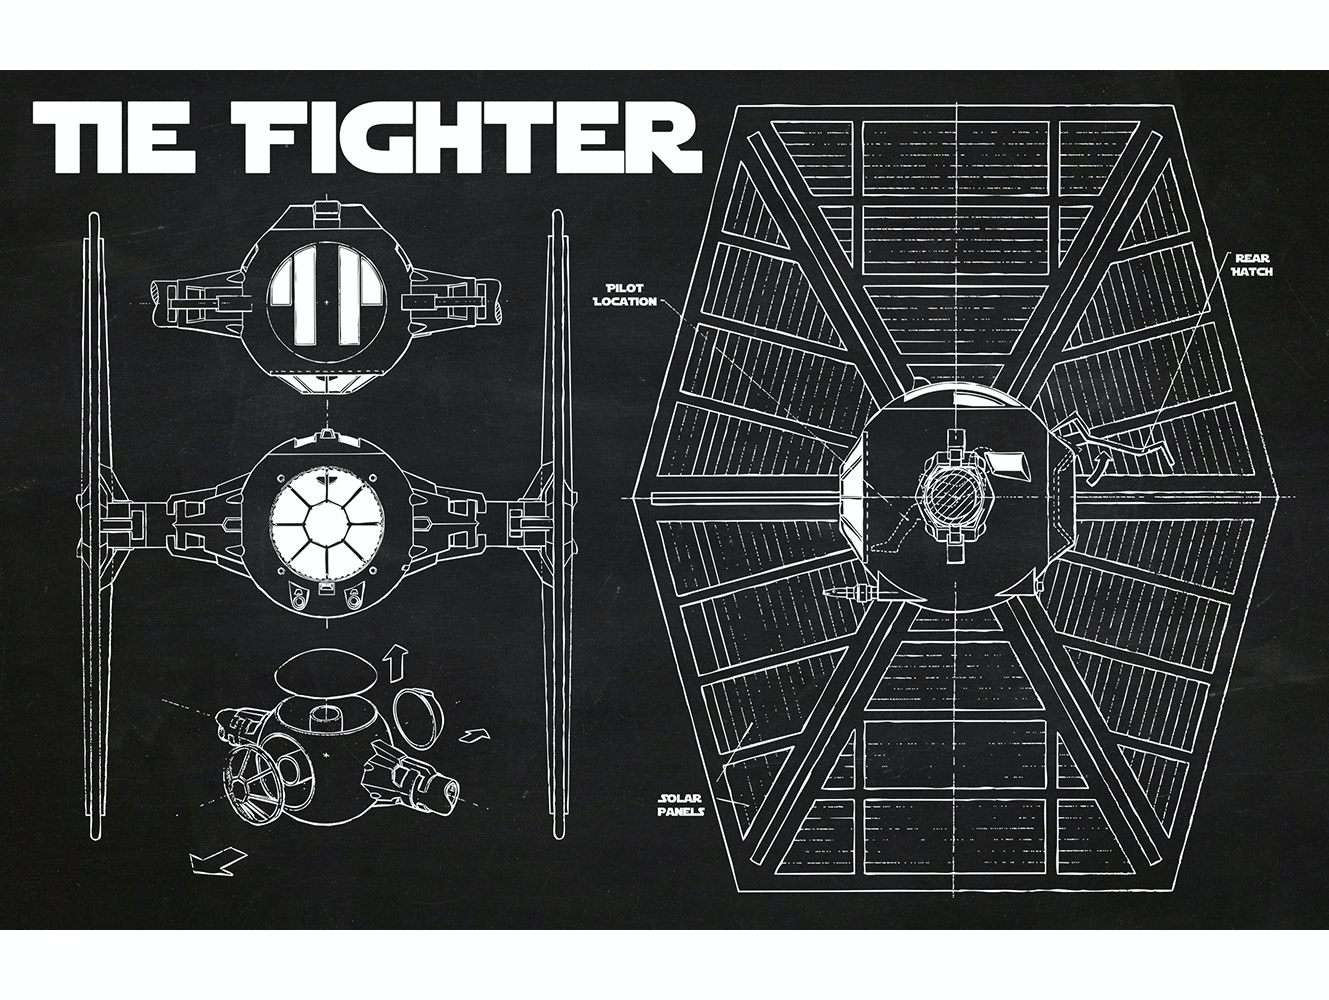 Stary Wars - Tie Fighter (Horizontal Print)